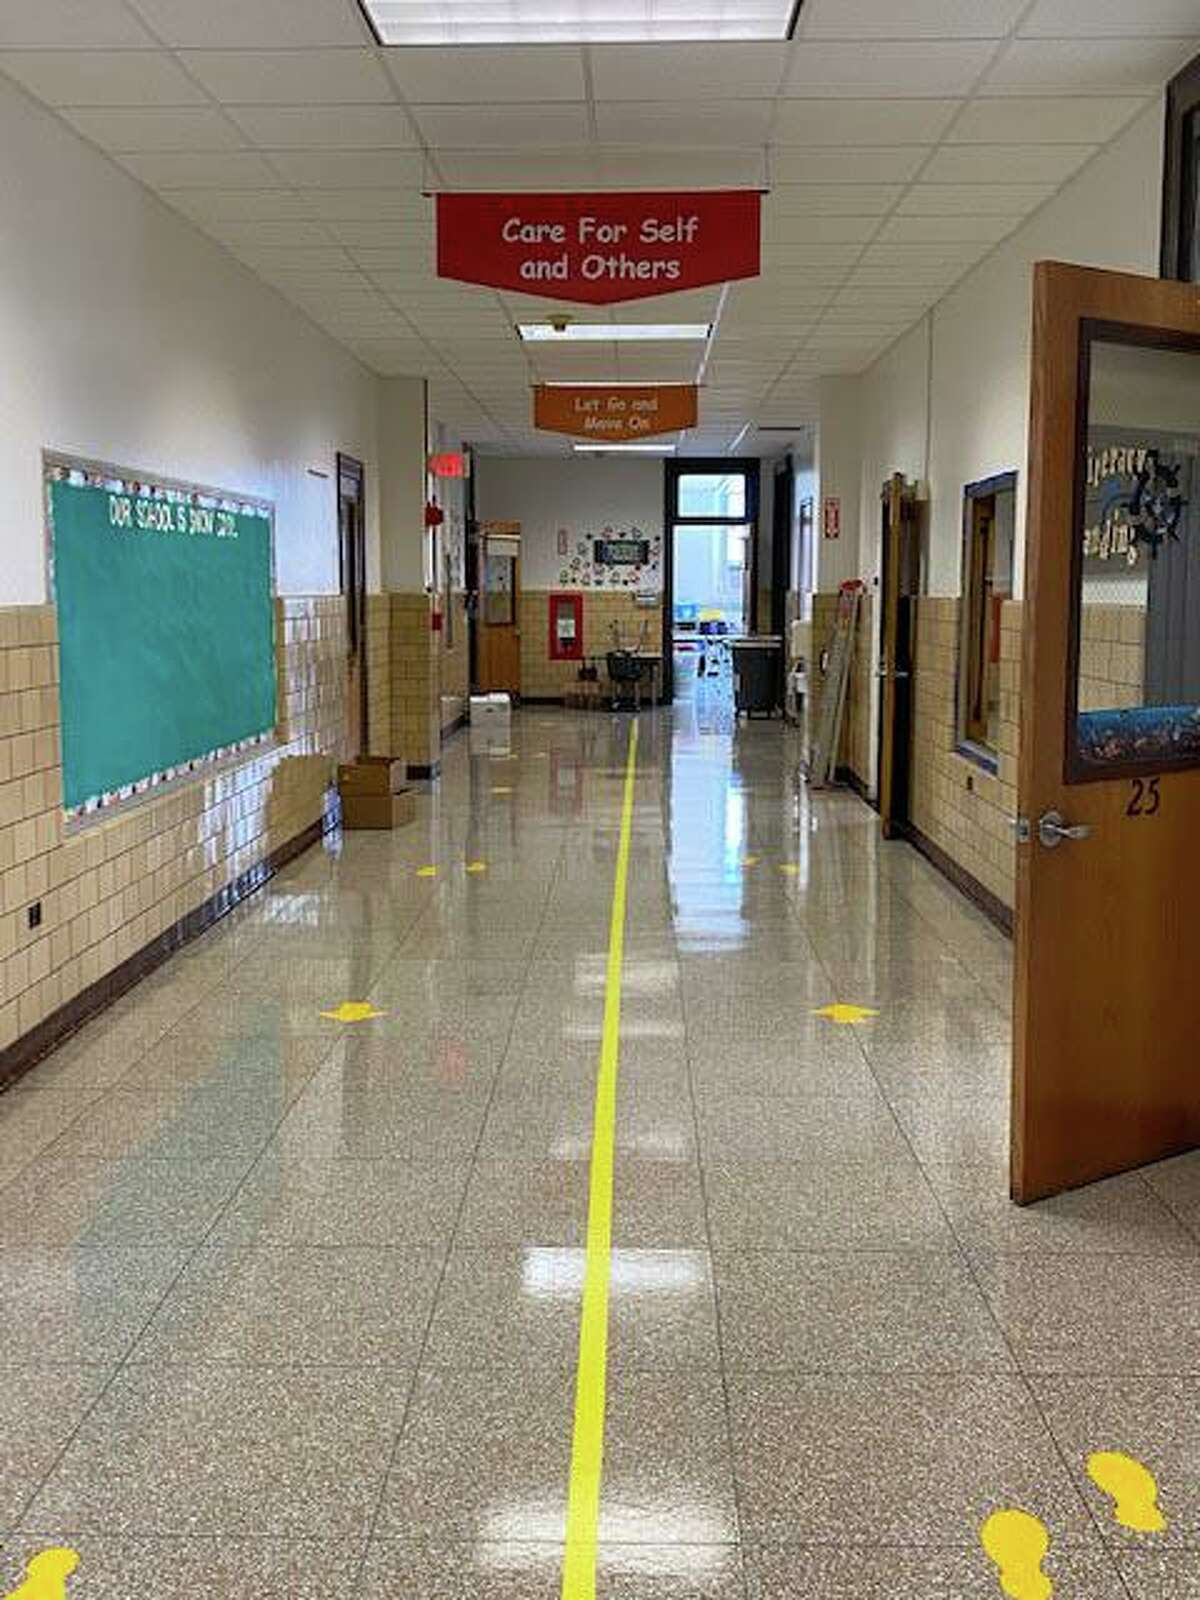 Signs and floor markings in the hallways at Old Greenwich School.